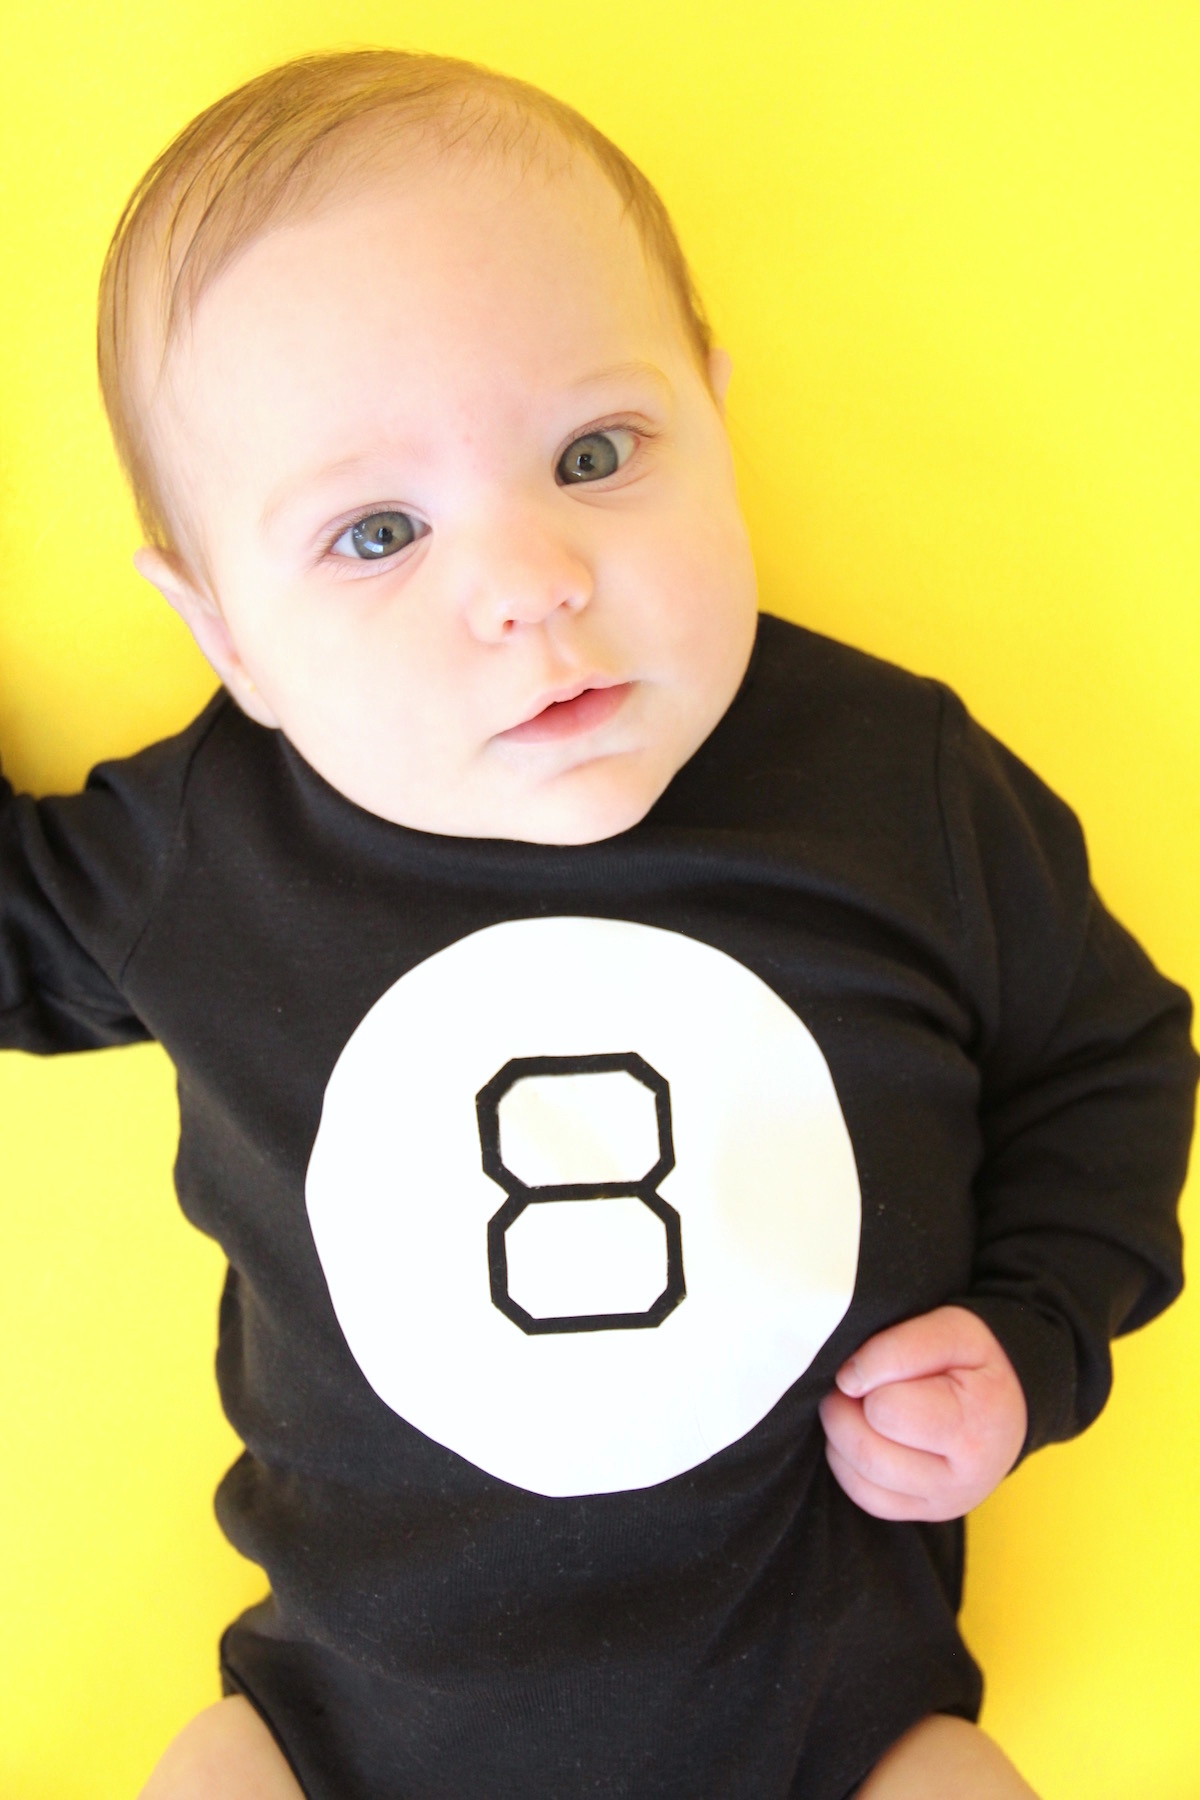 Magic 8 ball costume DIY | And We Play